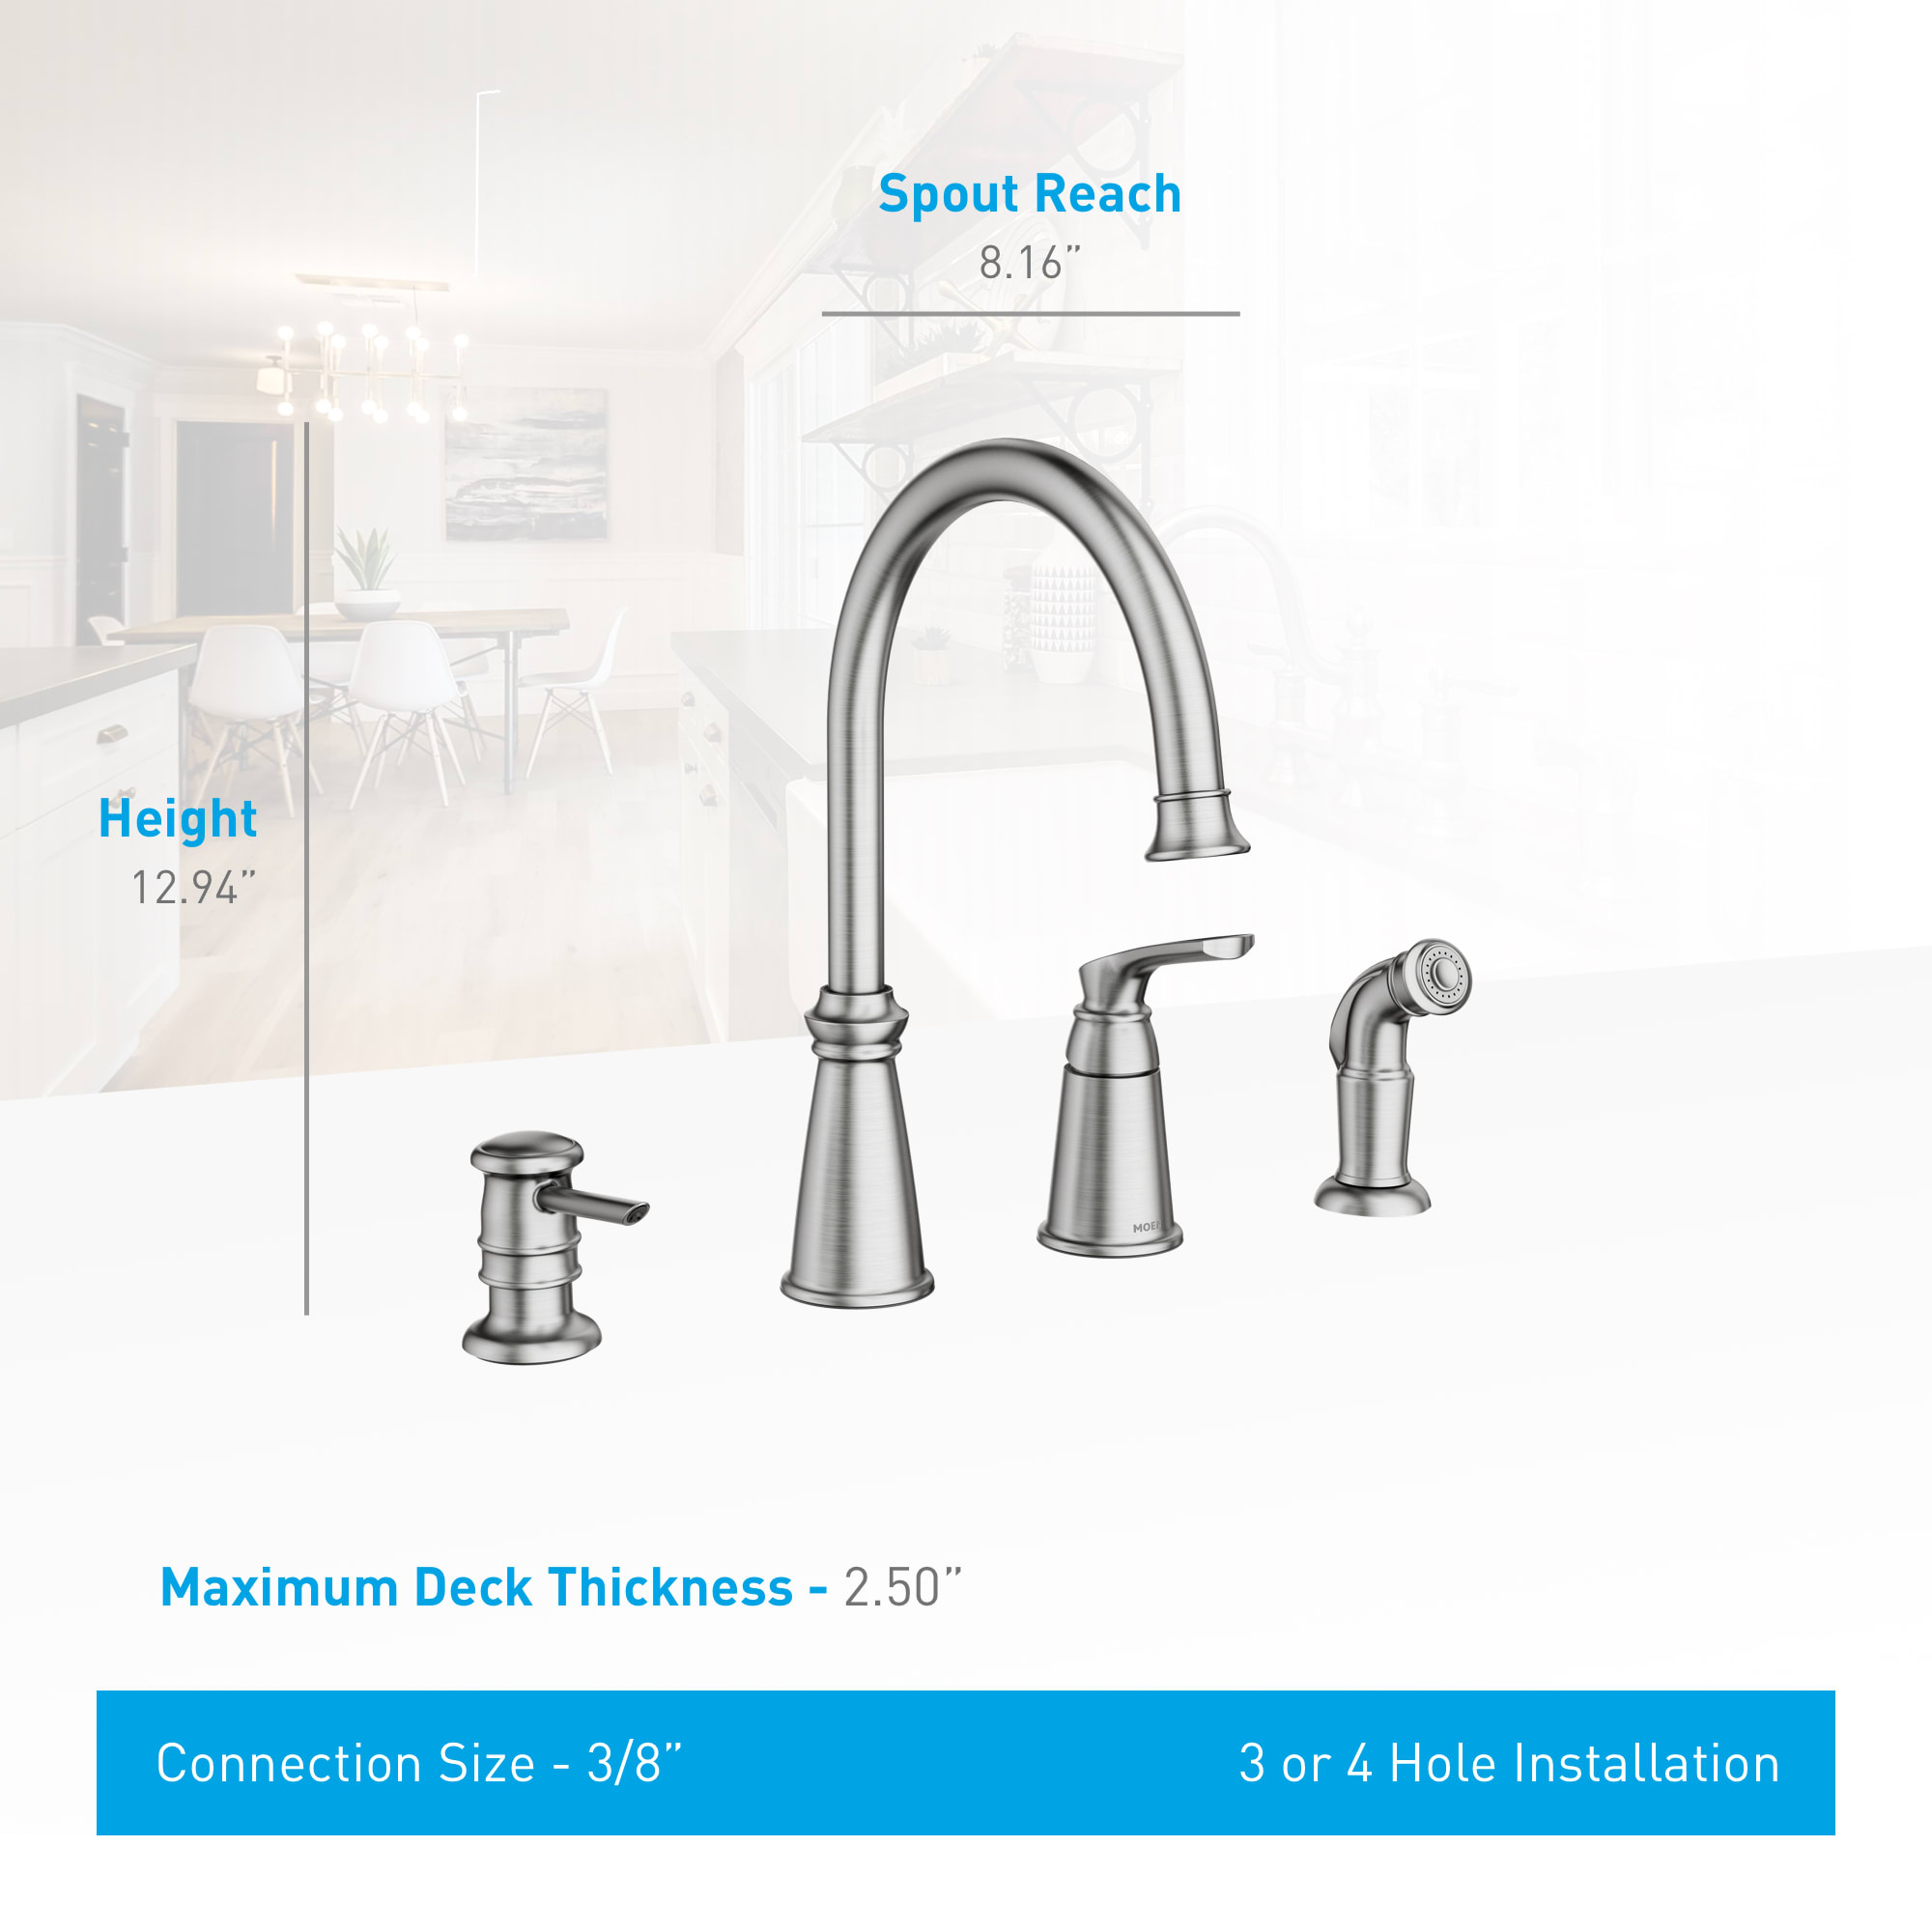 Moen 87044srs Spot Resist Stainless Whitmore Single Handle High Arch Kitchen Faucet With Side Spray And Soap Dispenser Faucet Com